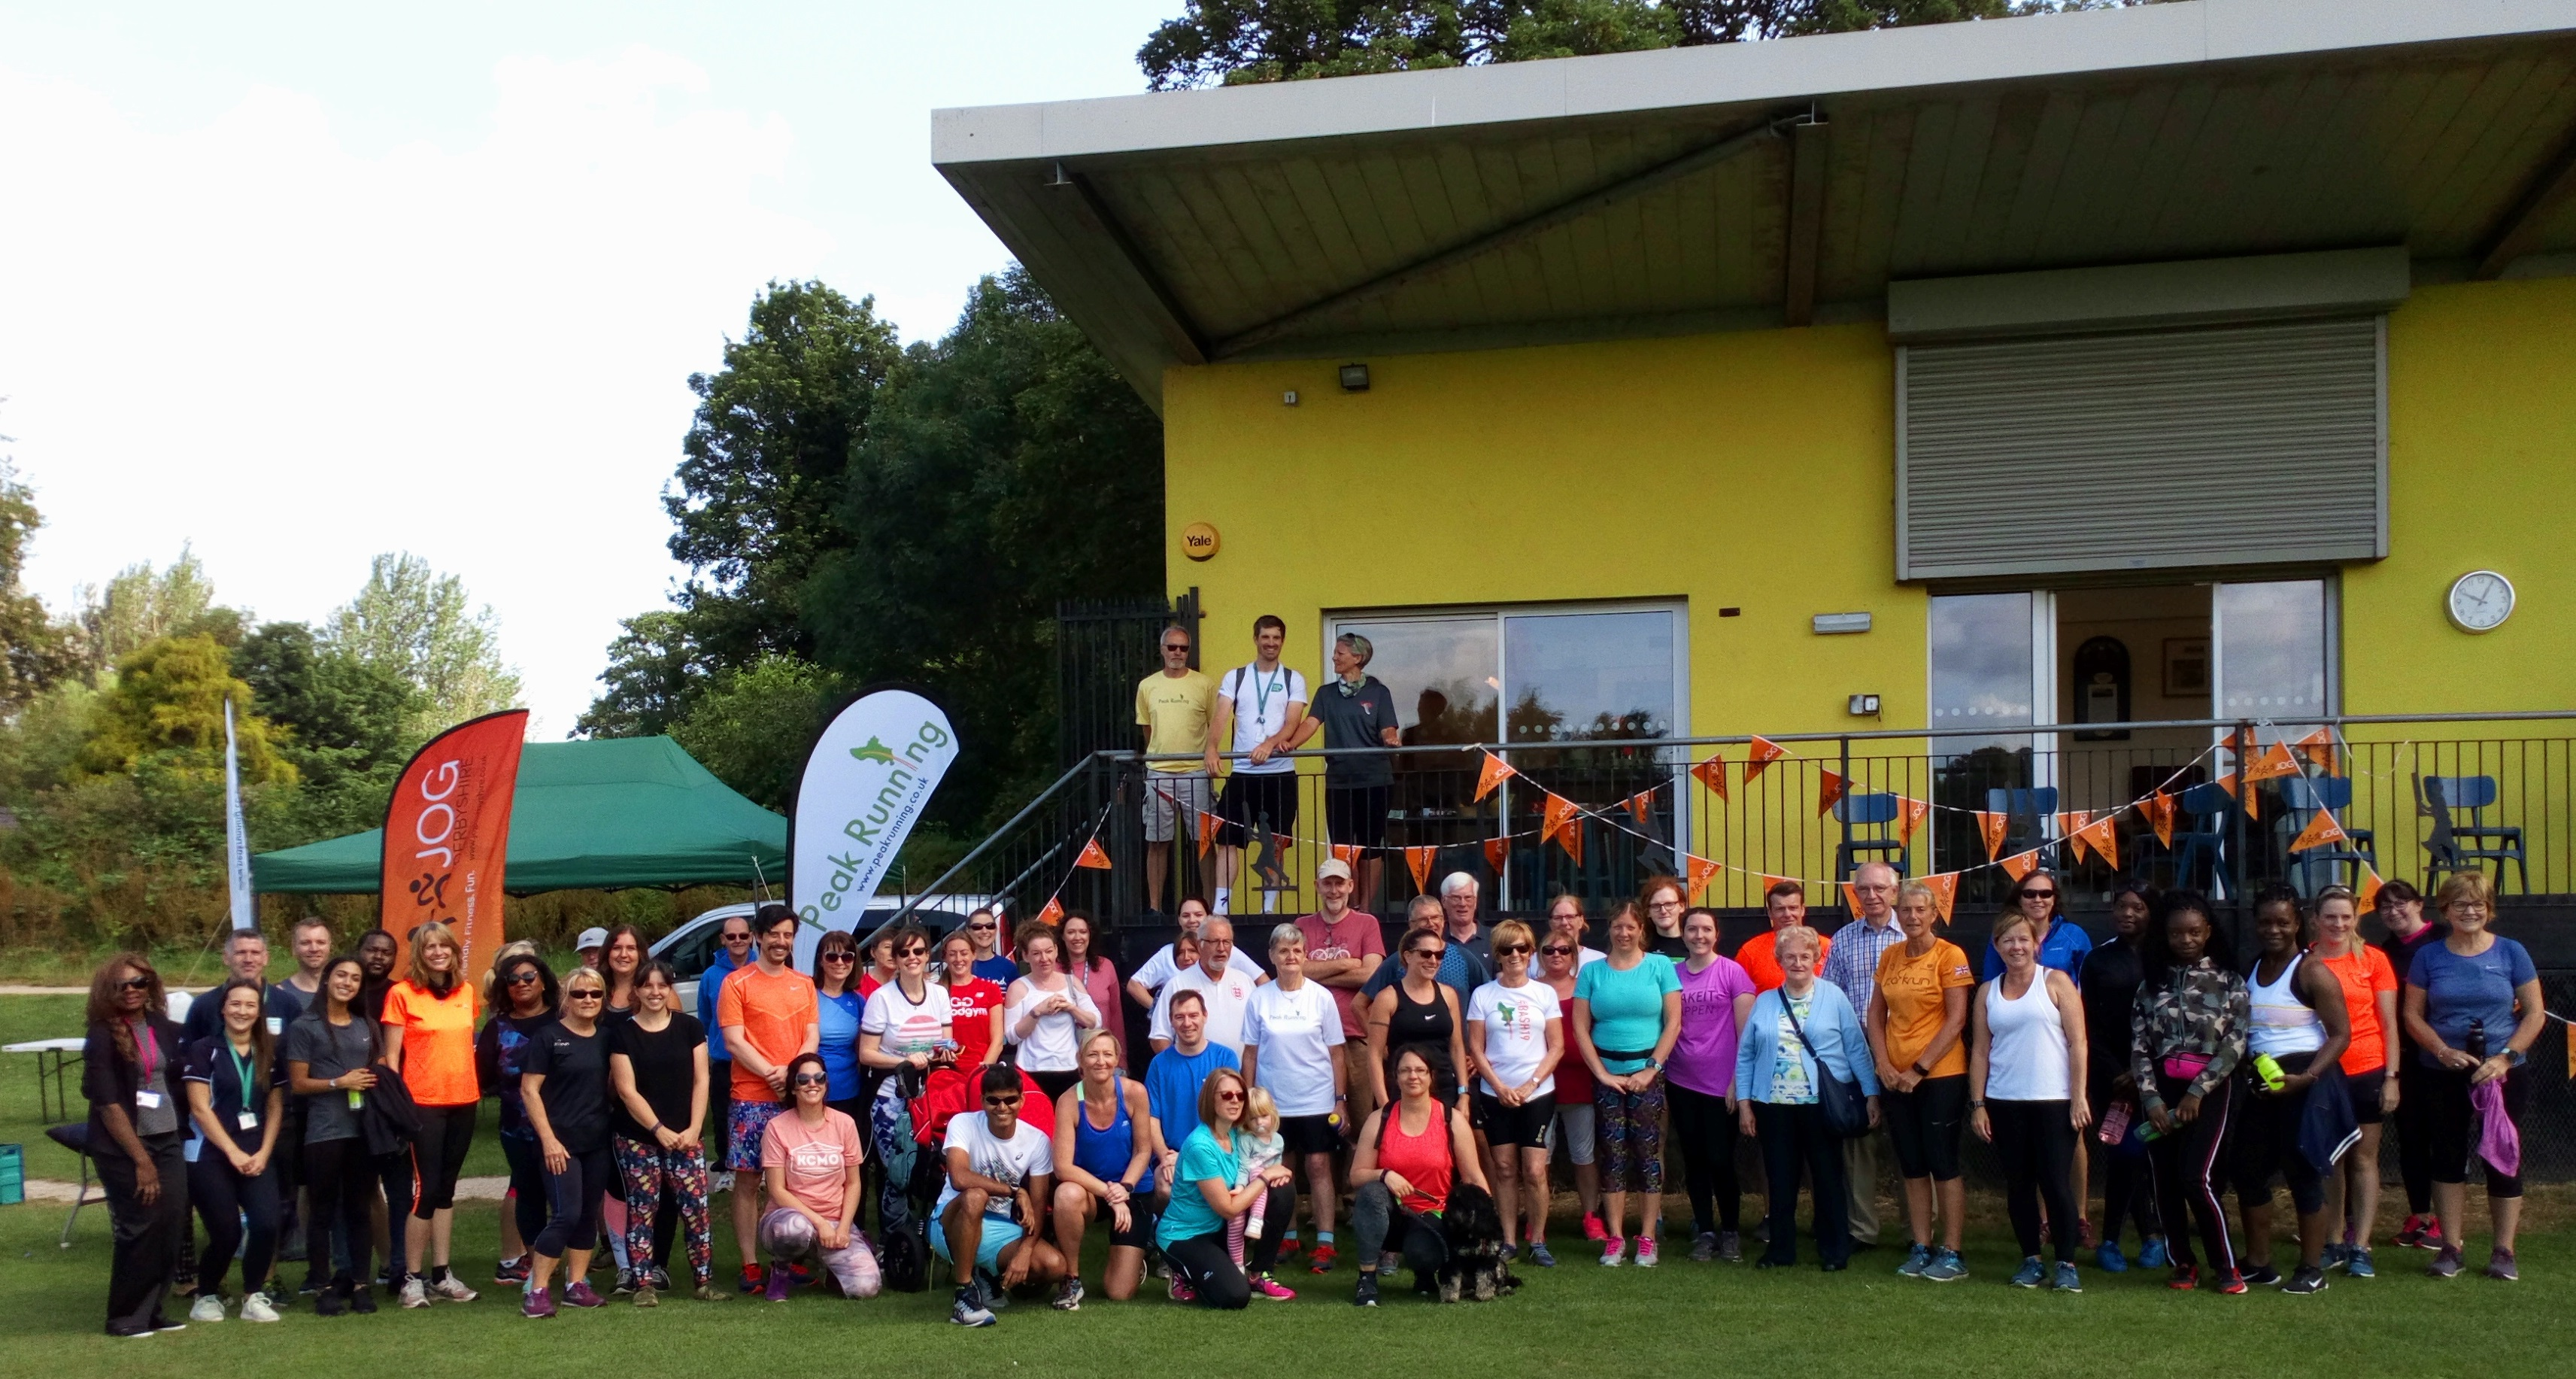 #Runwalktalk showcases benefits of exercise and conversation